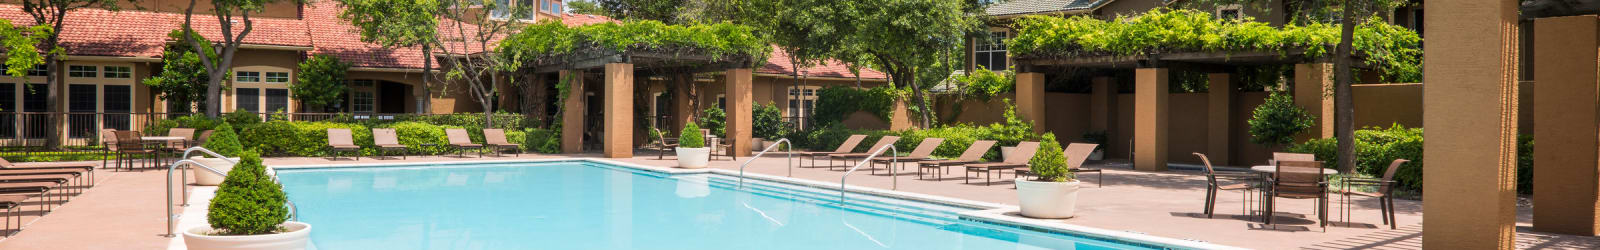 Pet friendly at Estates on Frankford in Dallas, Texas